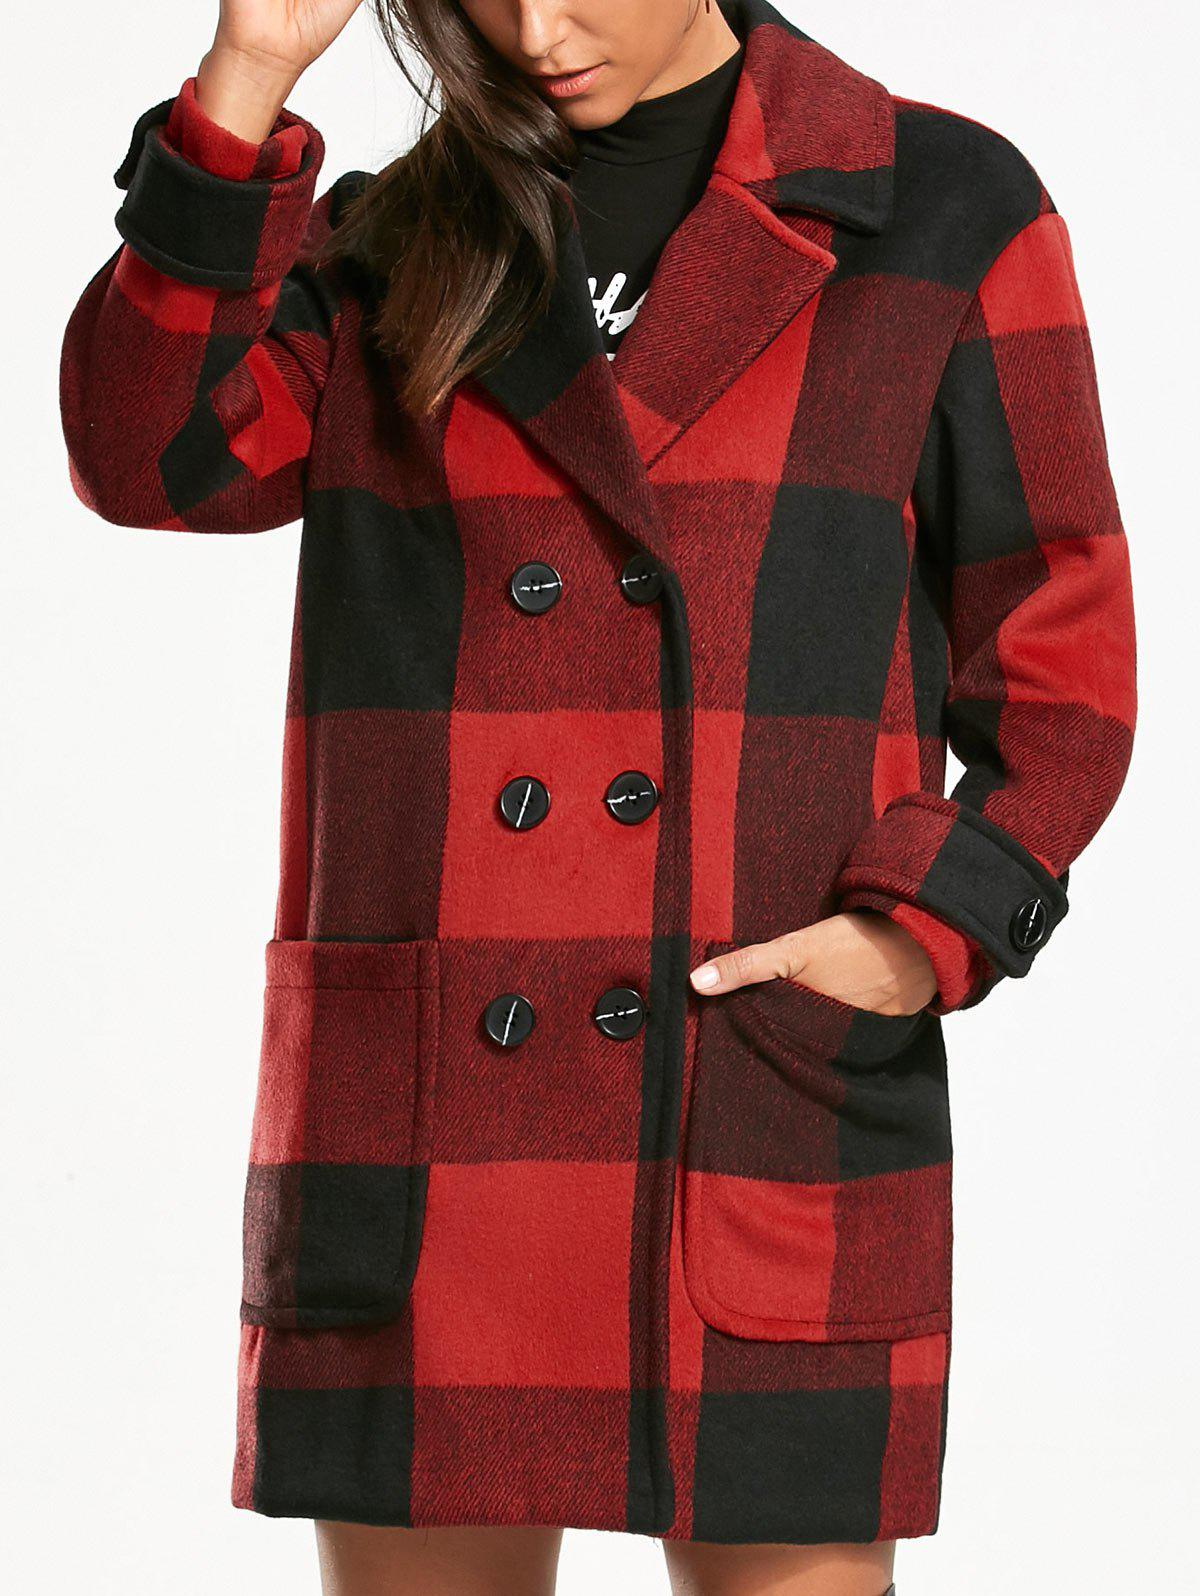 Tartan Double Breasted Pea Coat - RED/BLACK 2XL